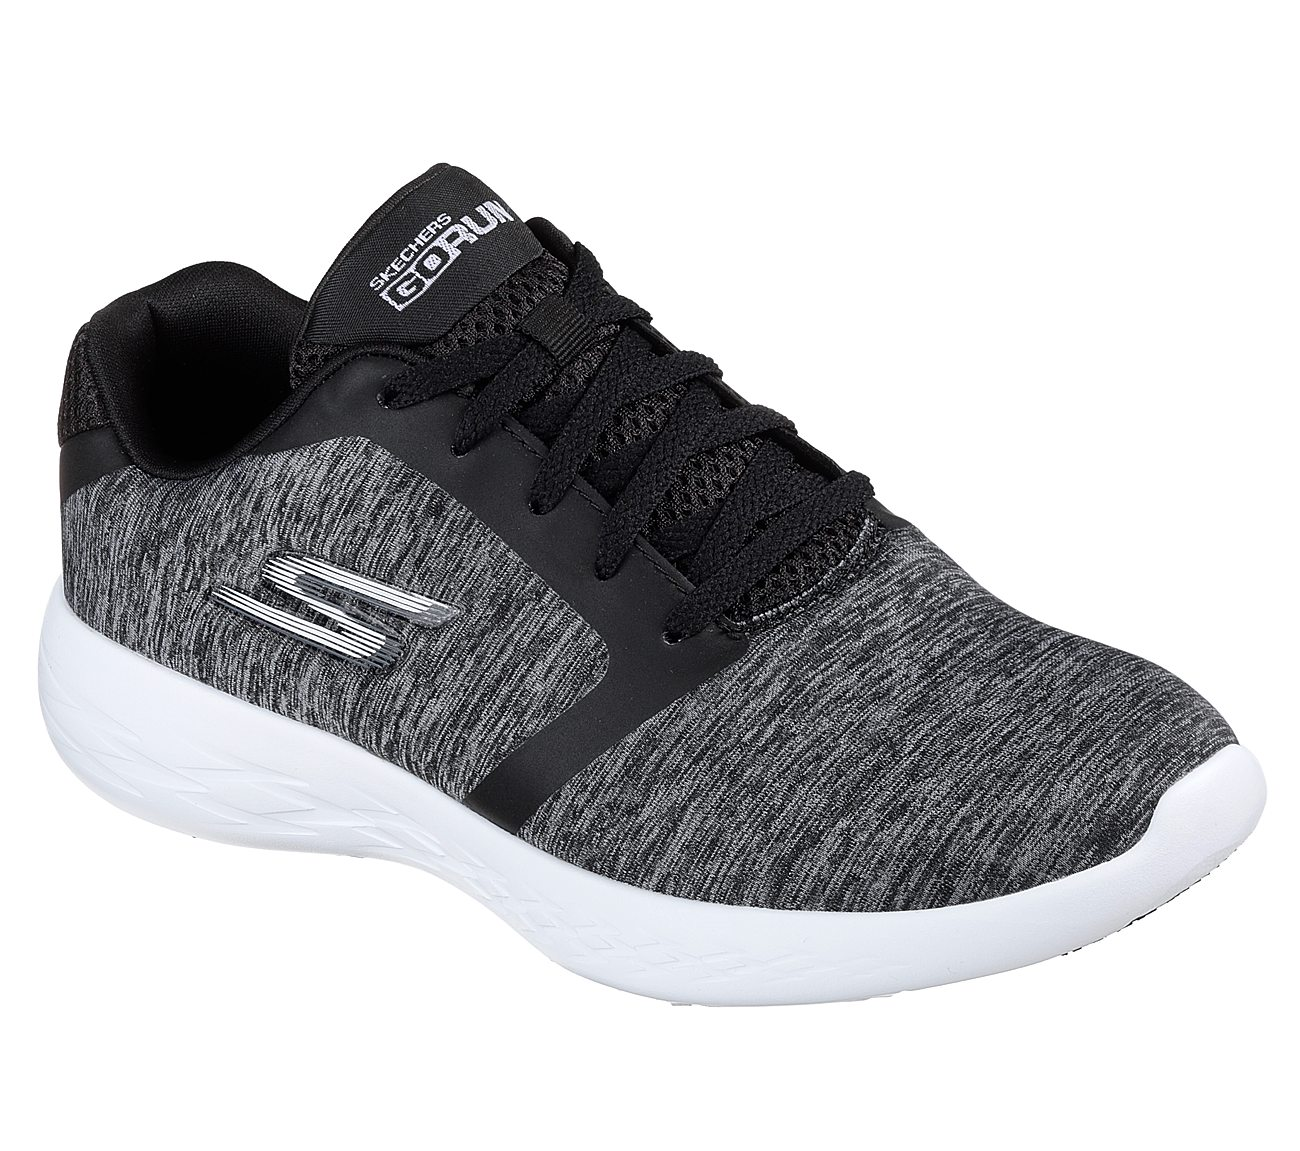 65 600 Shoes Buy Skechers Running Gorun Only Divert 00 qBFP0AF